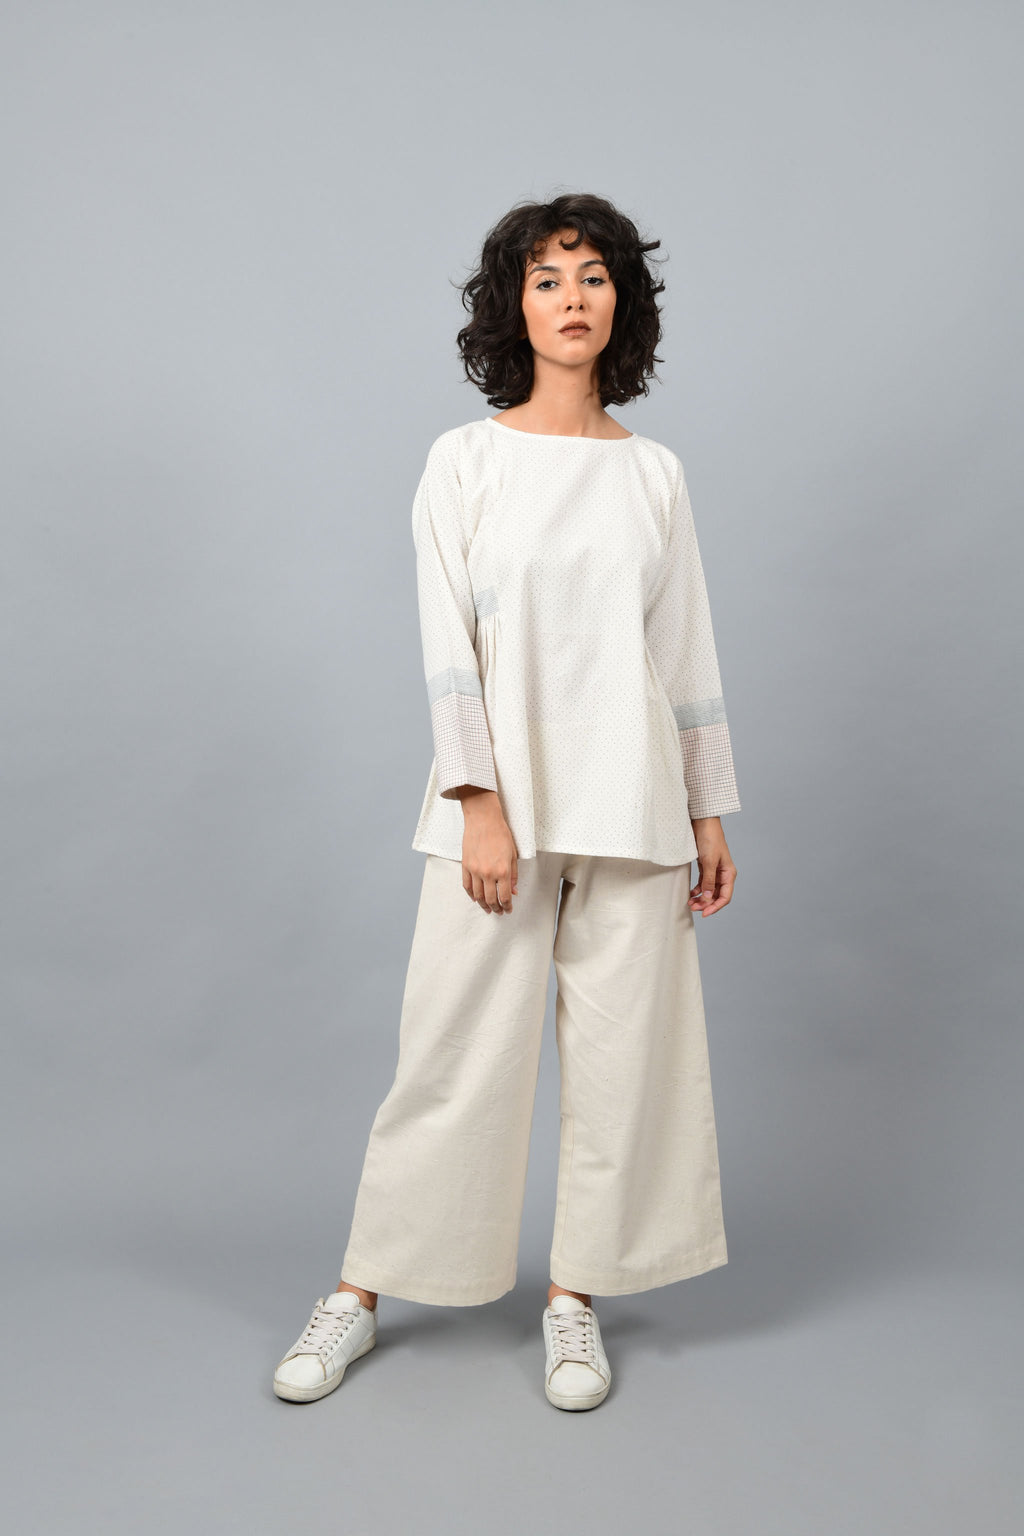 Model wearing Dolman sleeve side gather khadi handspun handwoven cotton top in natural off-white color with blue dots and blue stripes on the sleeves teamed with off-white palazzos and white sneakers